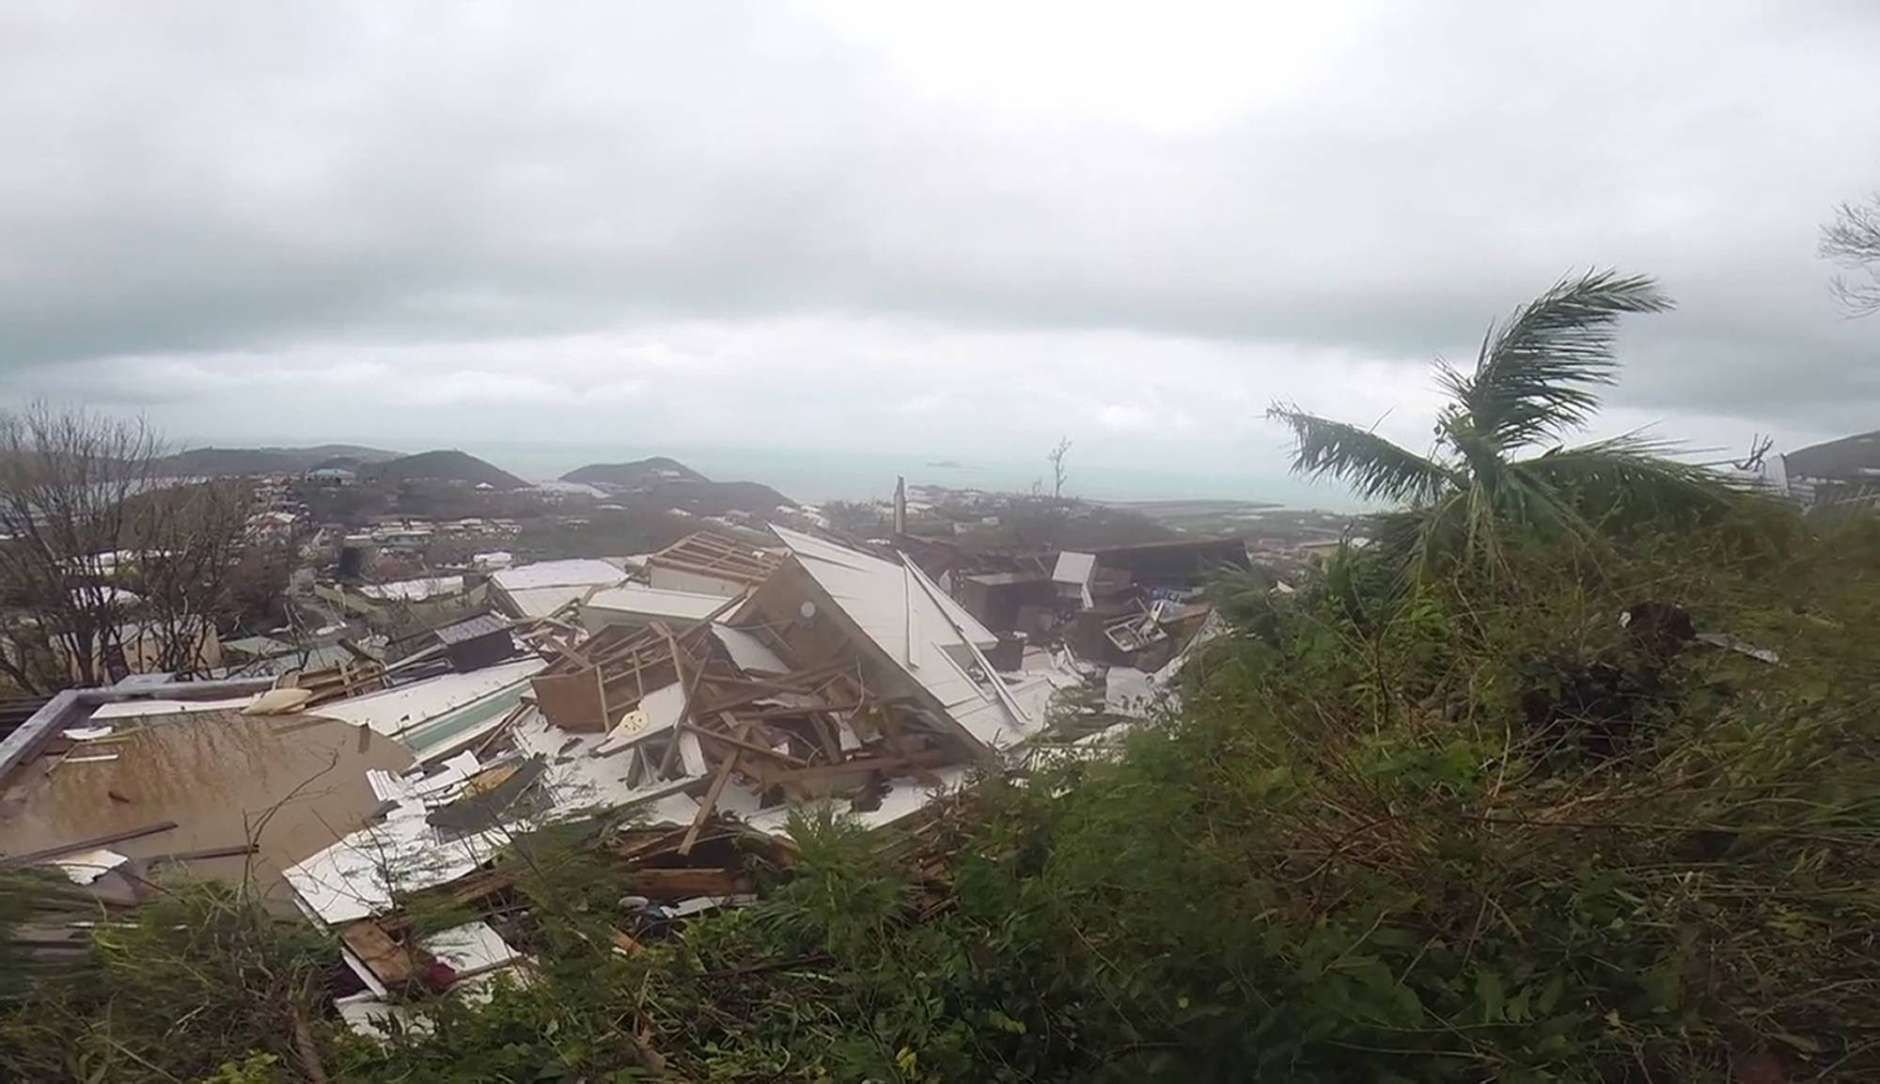 This image made from video shows several damaged houses by Hurricane Irma in St. Thomas, U.S. Virgin Islands, Thursday, Sept. 7, 2017. Hurricane Irma weakened slightly Thursday with sustained winds of 175 mph, according to the National Hurricane Center. The storm boasted 185 mph winds for a more than 24-hour period, making it the strongest storm ever recorded in the Atlantic Ocean. The storm was expected to arrive in Cuba by Friday. It could hit the Florida mainland by late Saturday, according to hurricane center models. (AP Photo/Ian Brown)